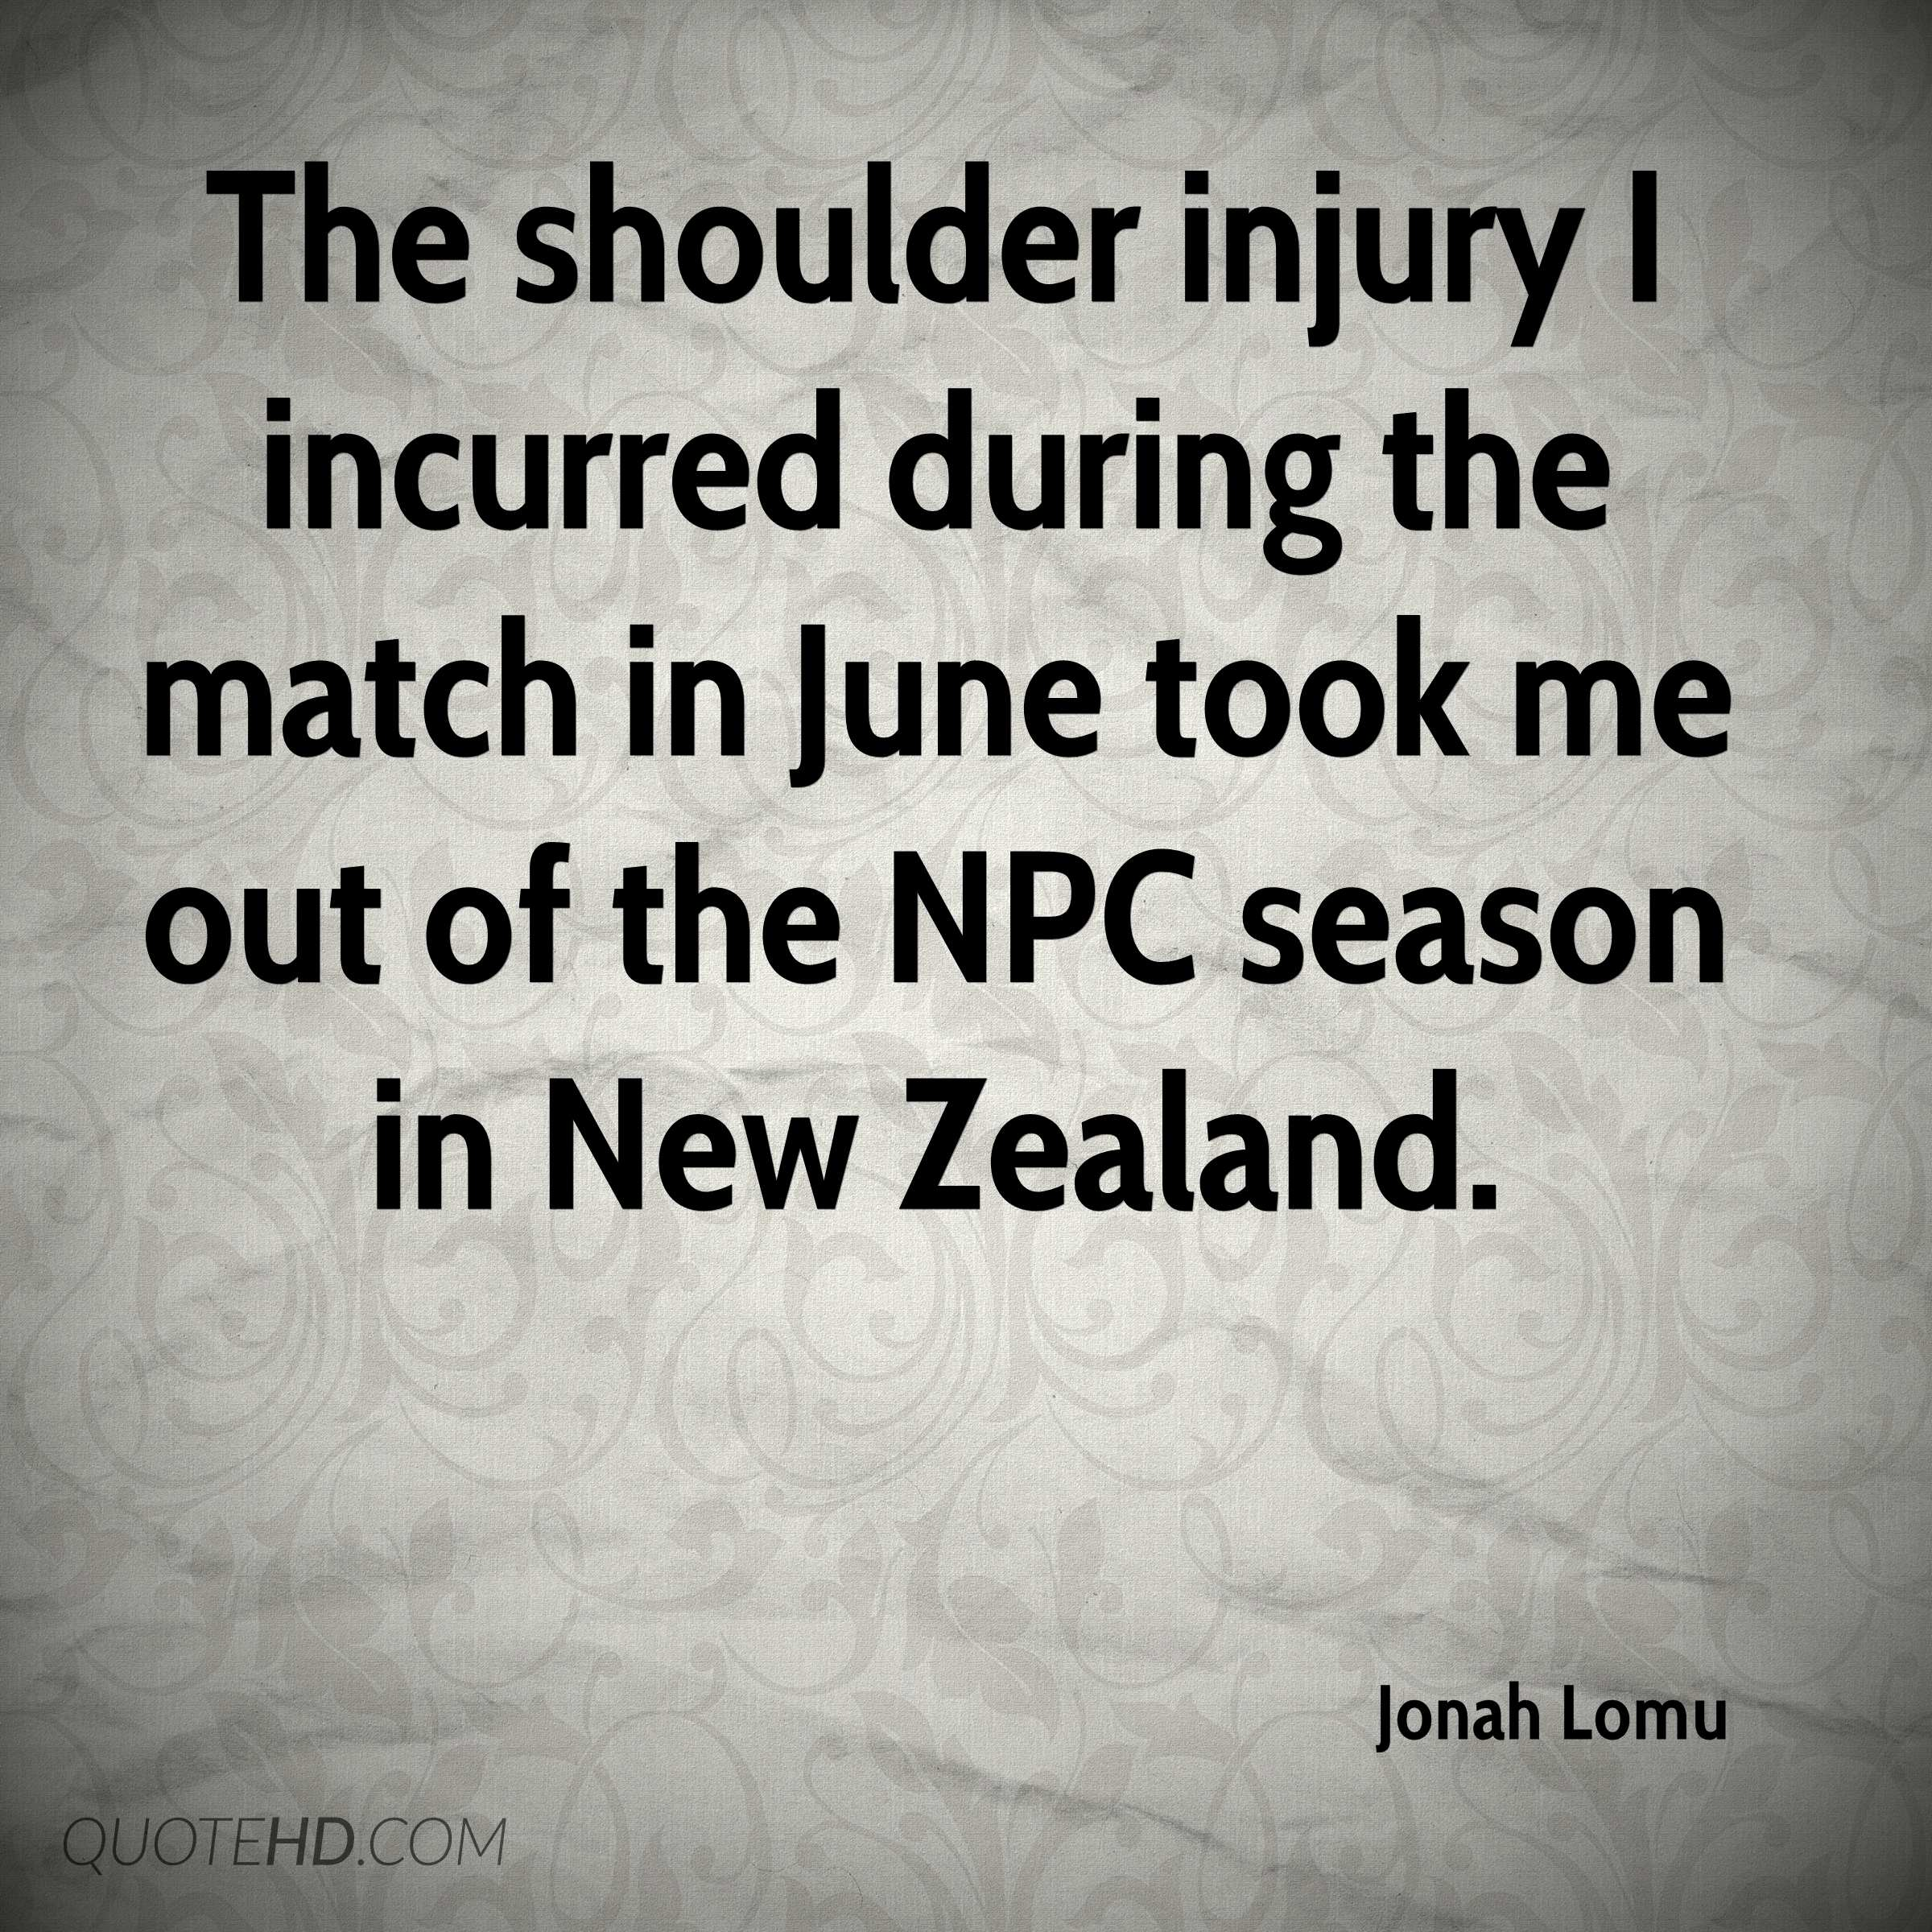 The shoulder injury I incurred during the match in June took me out of the NPC season in New Zealand.